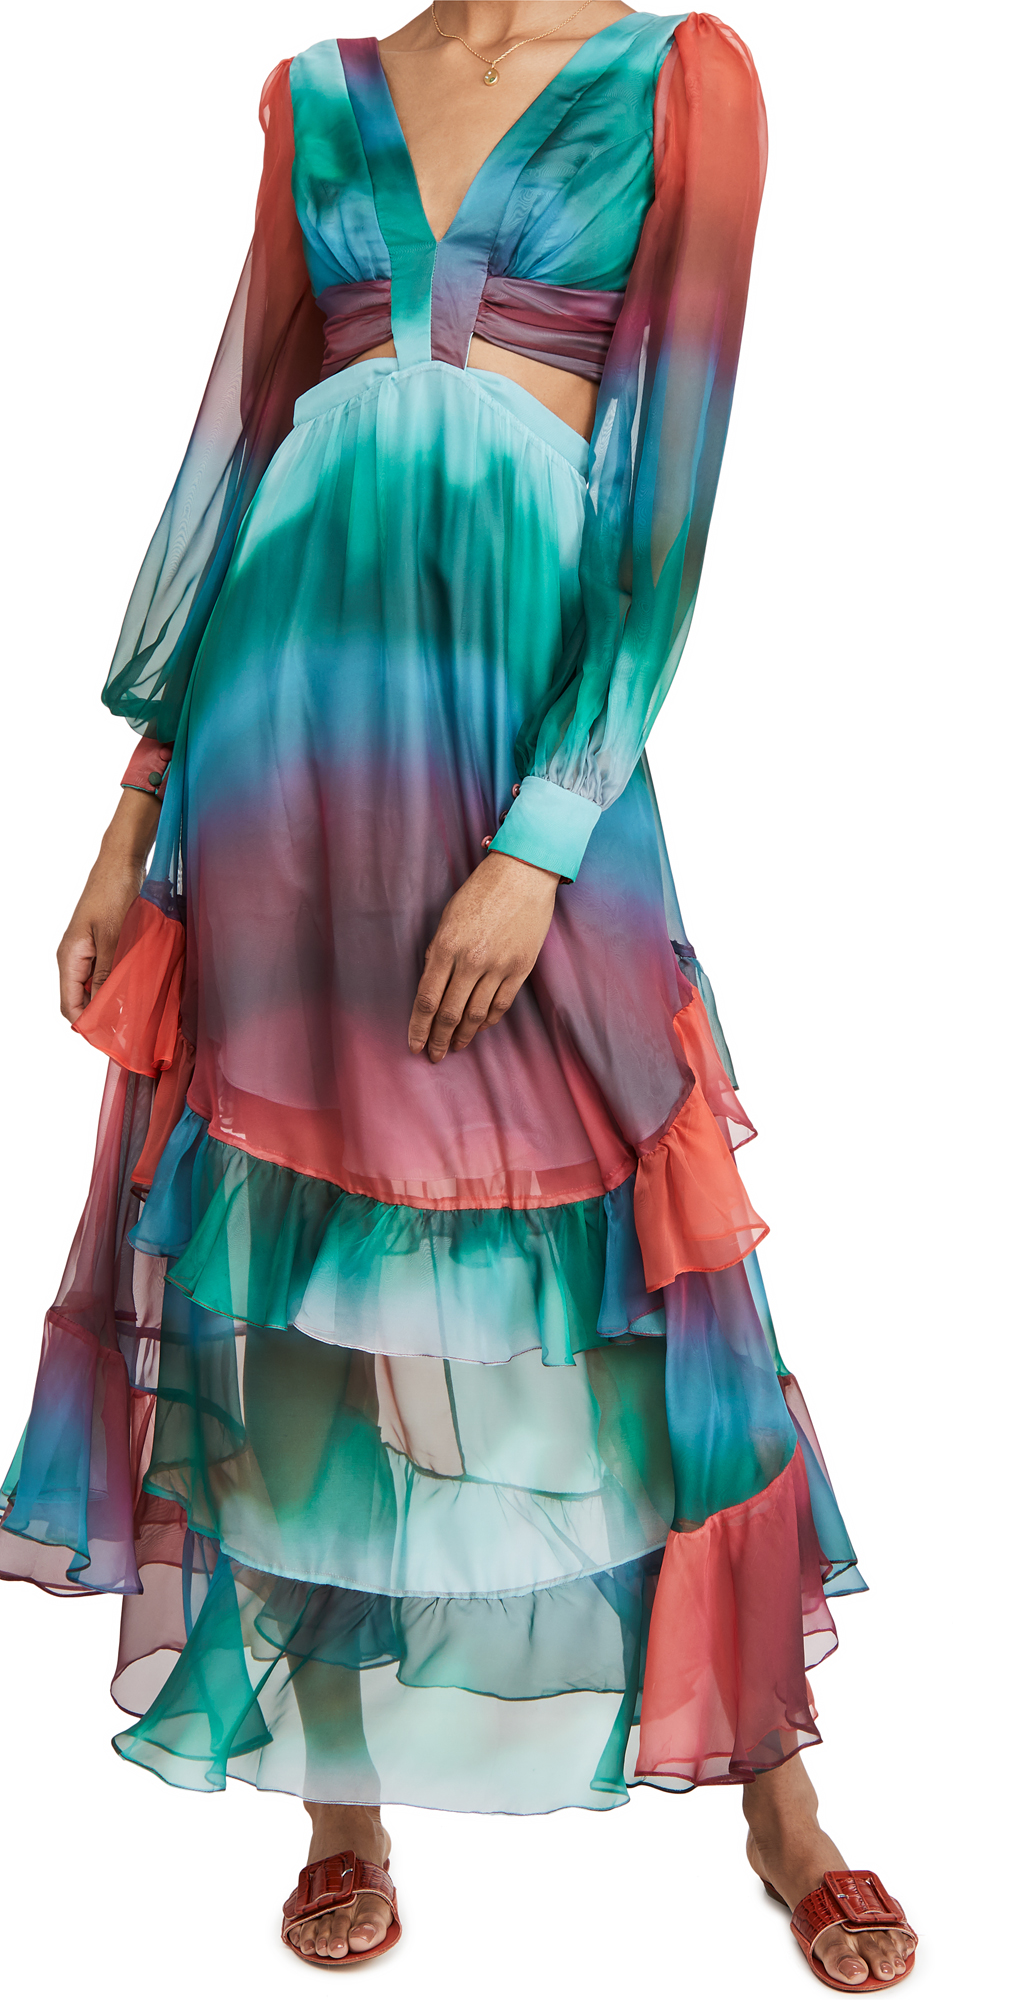 PatBO Sunset Cutout Maxi Dress